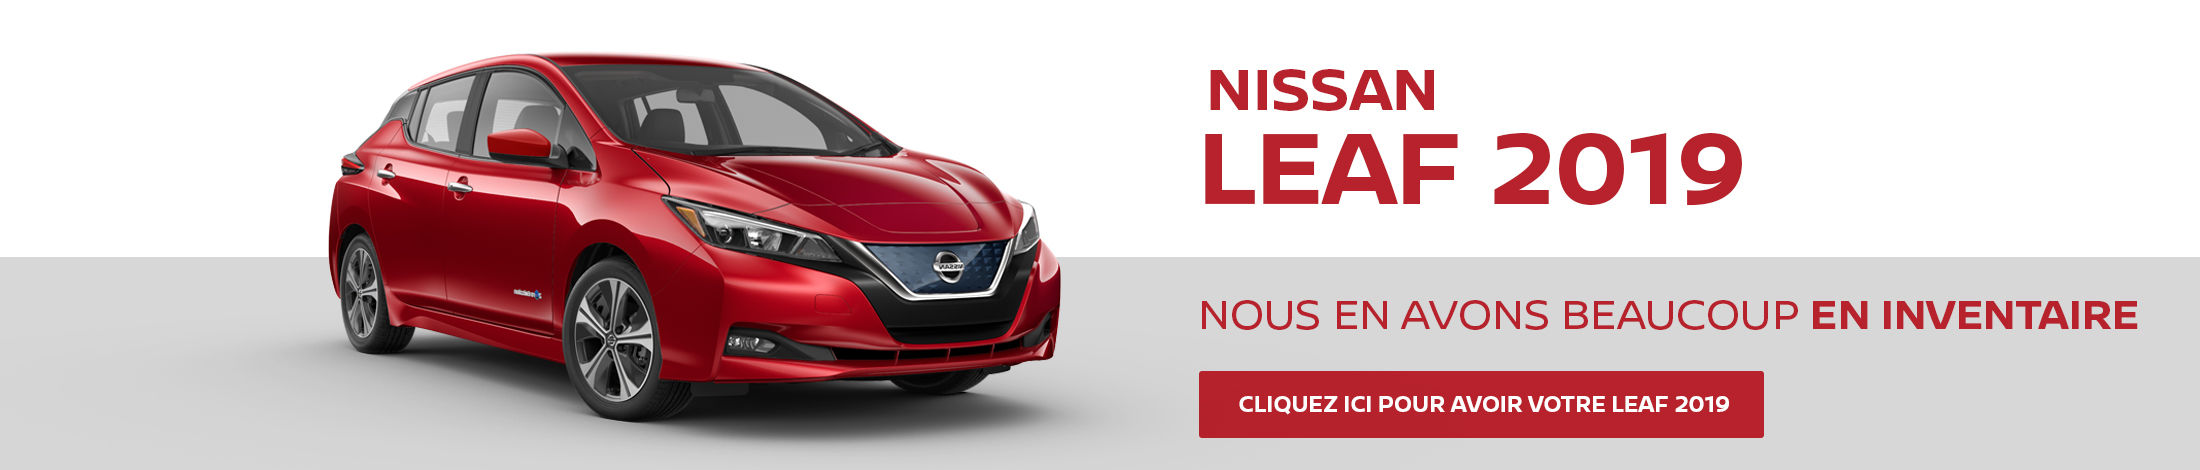 Nissan Leaf - Inventaire